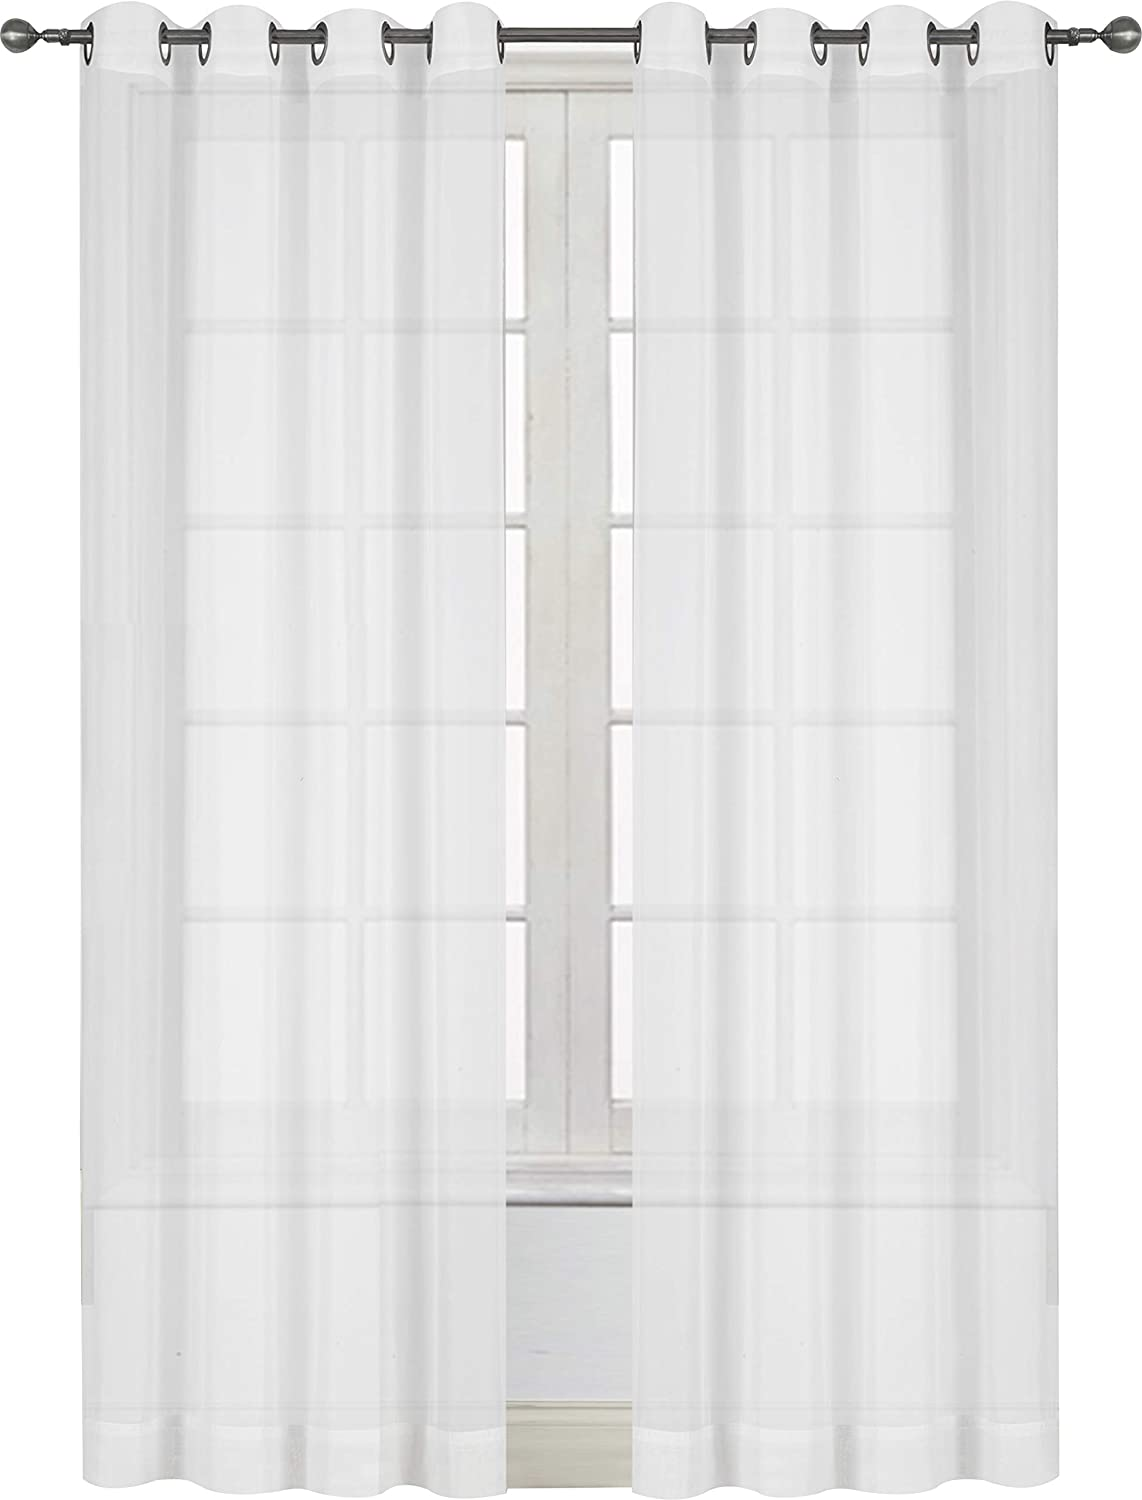 5b64f5b0421 Amazon.com  Utopia Bedding Premium White Sheer Curtains - Sheer Voile - White  Luxurious - High Thread Window Grommet Curtains - 2 Panel Set - 54 by 84 ...